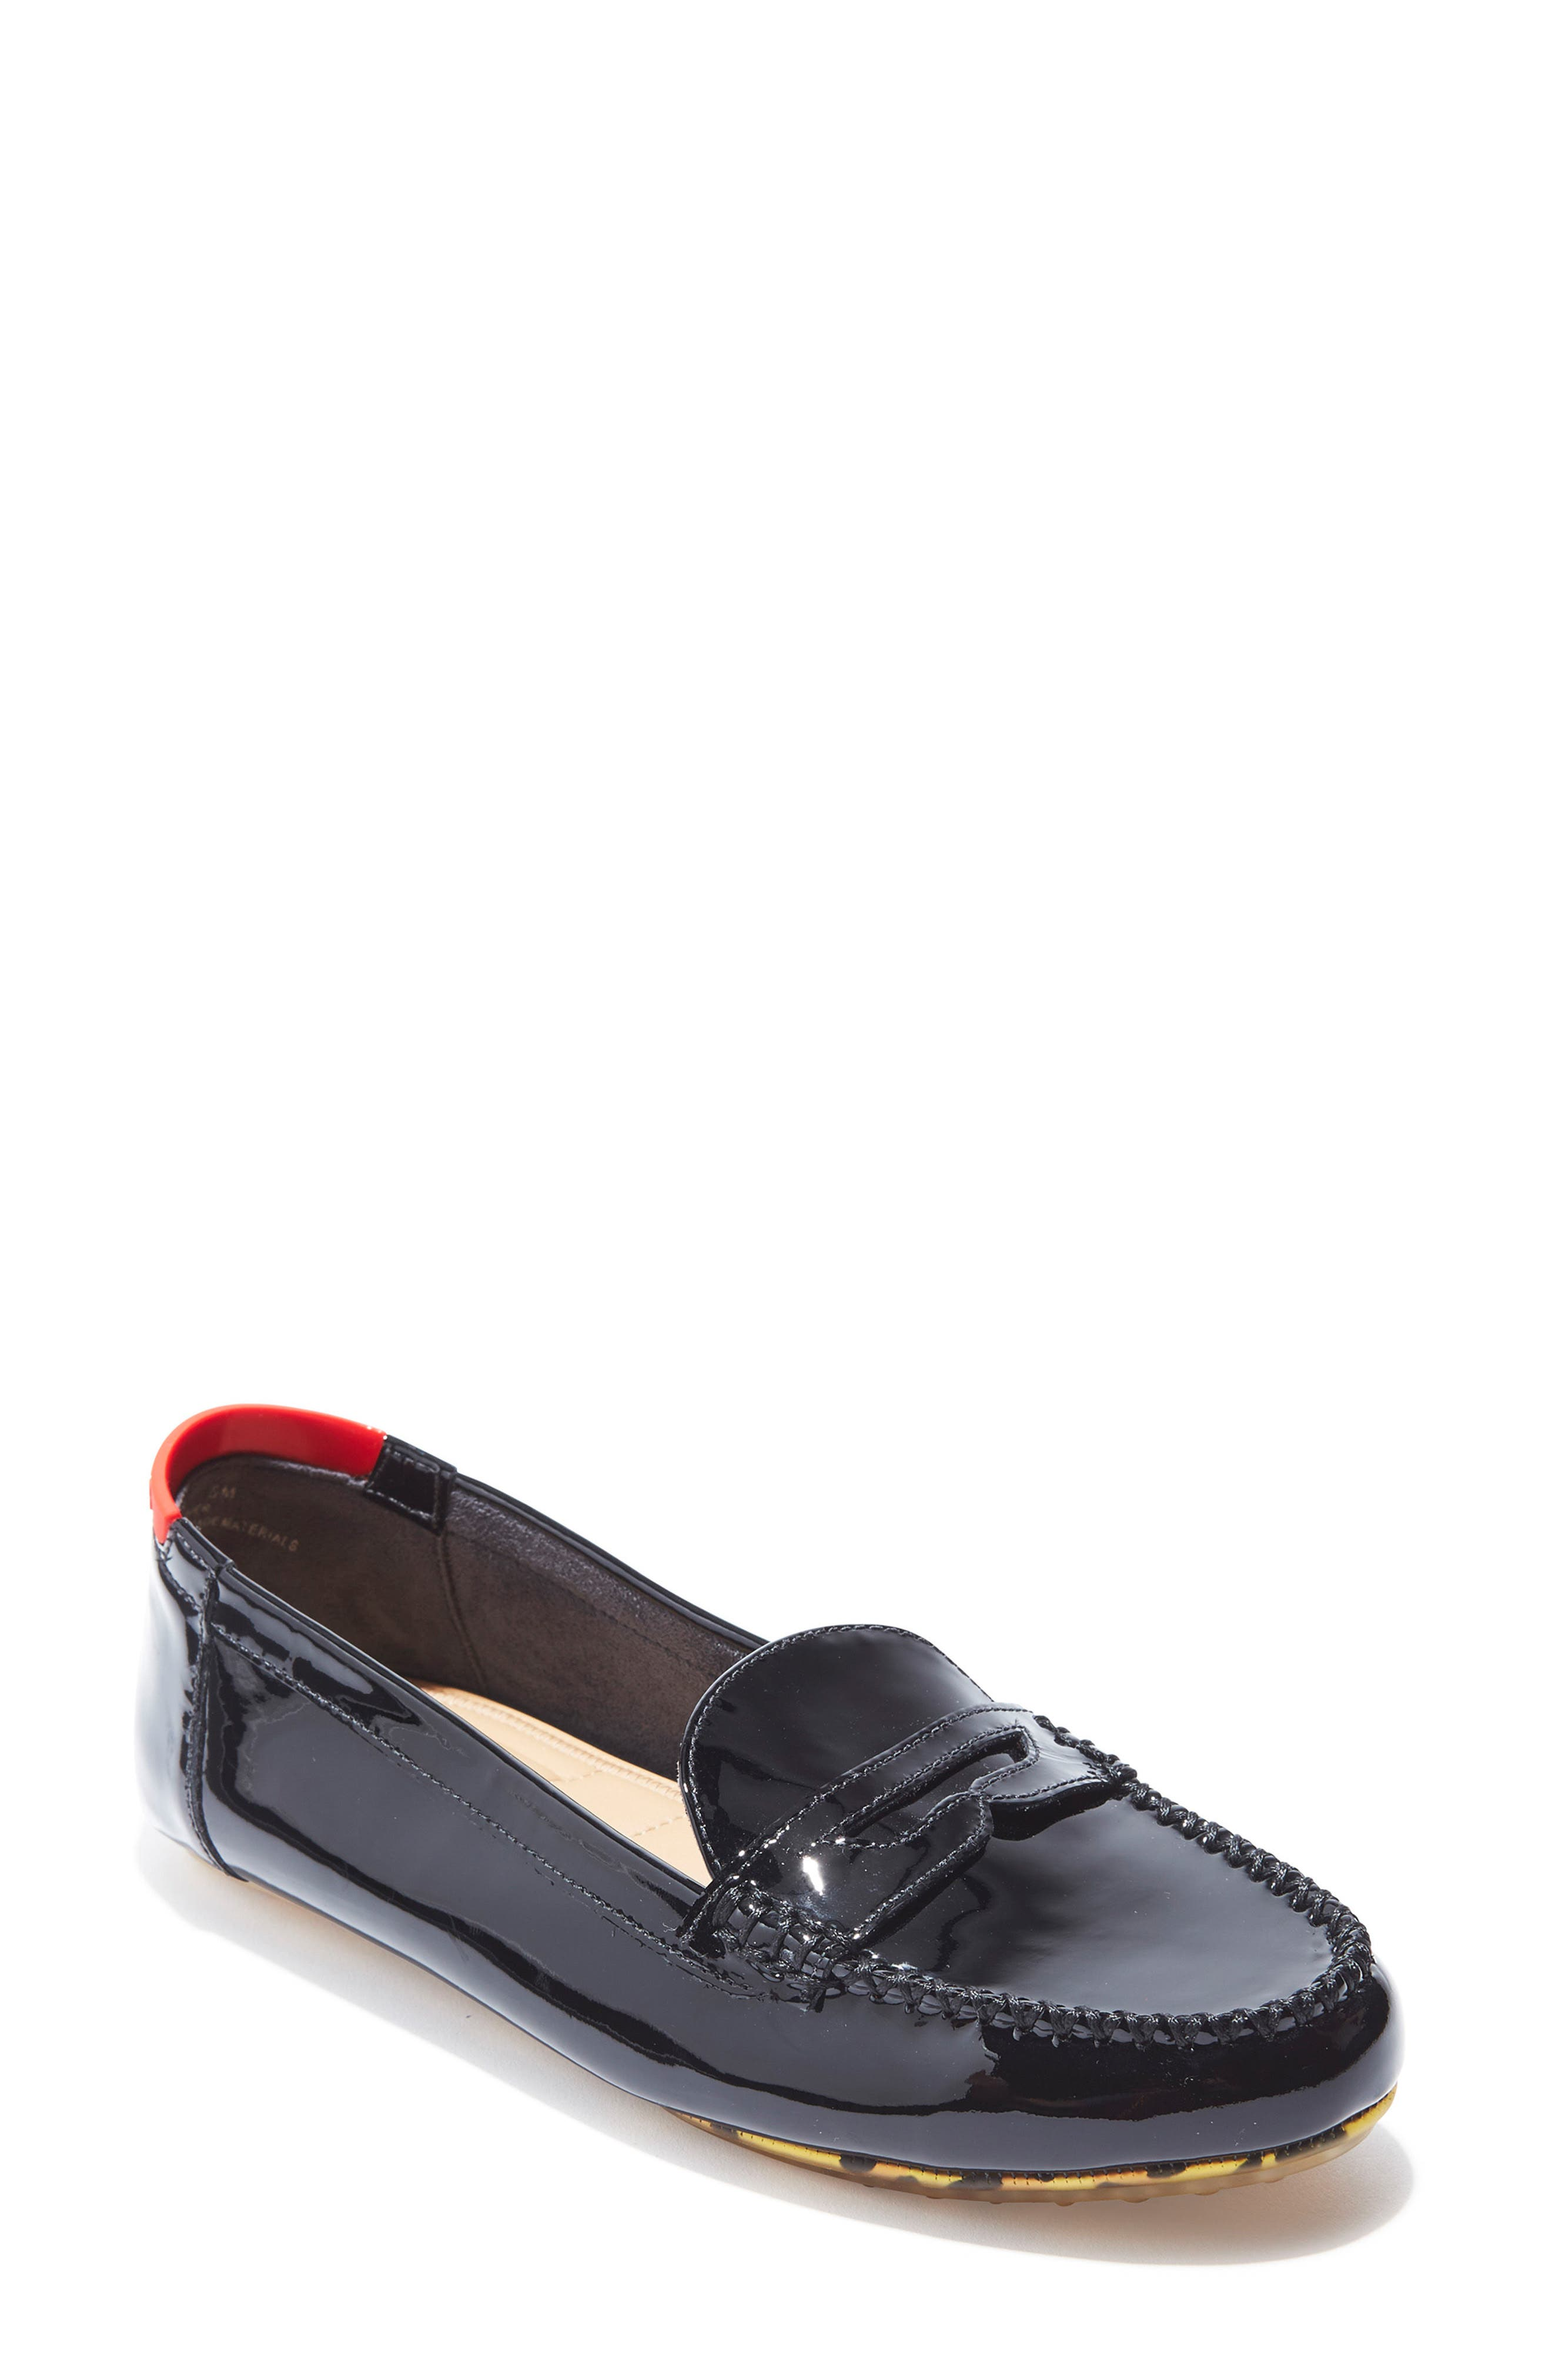 Main Image - Adam Tucker Kami Loafer (Women)